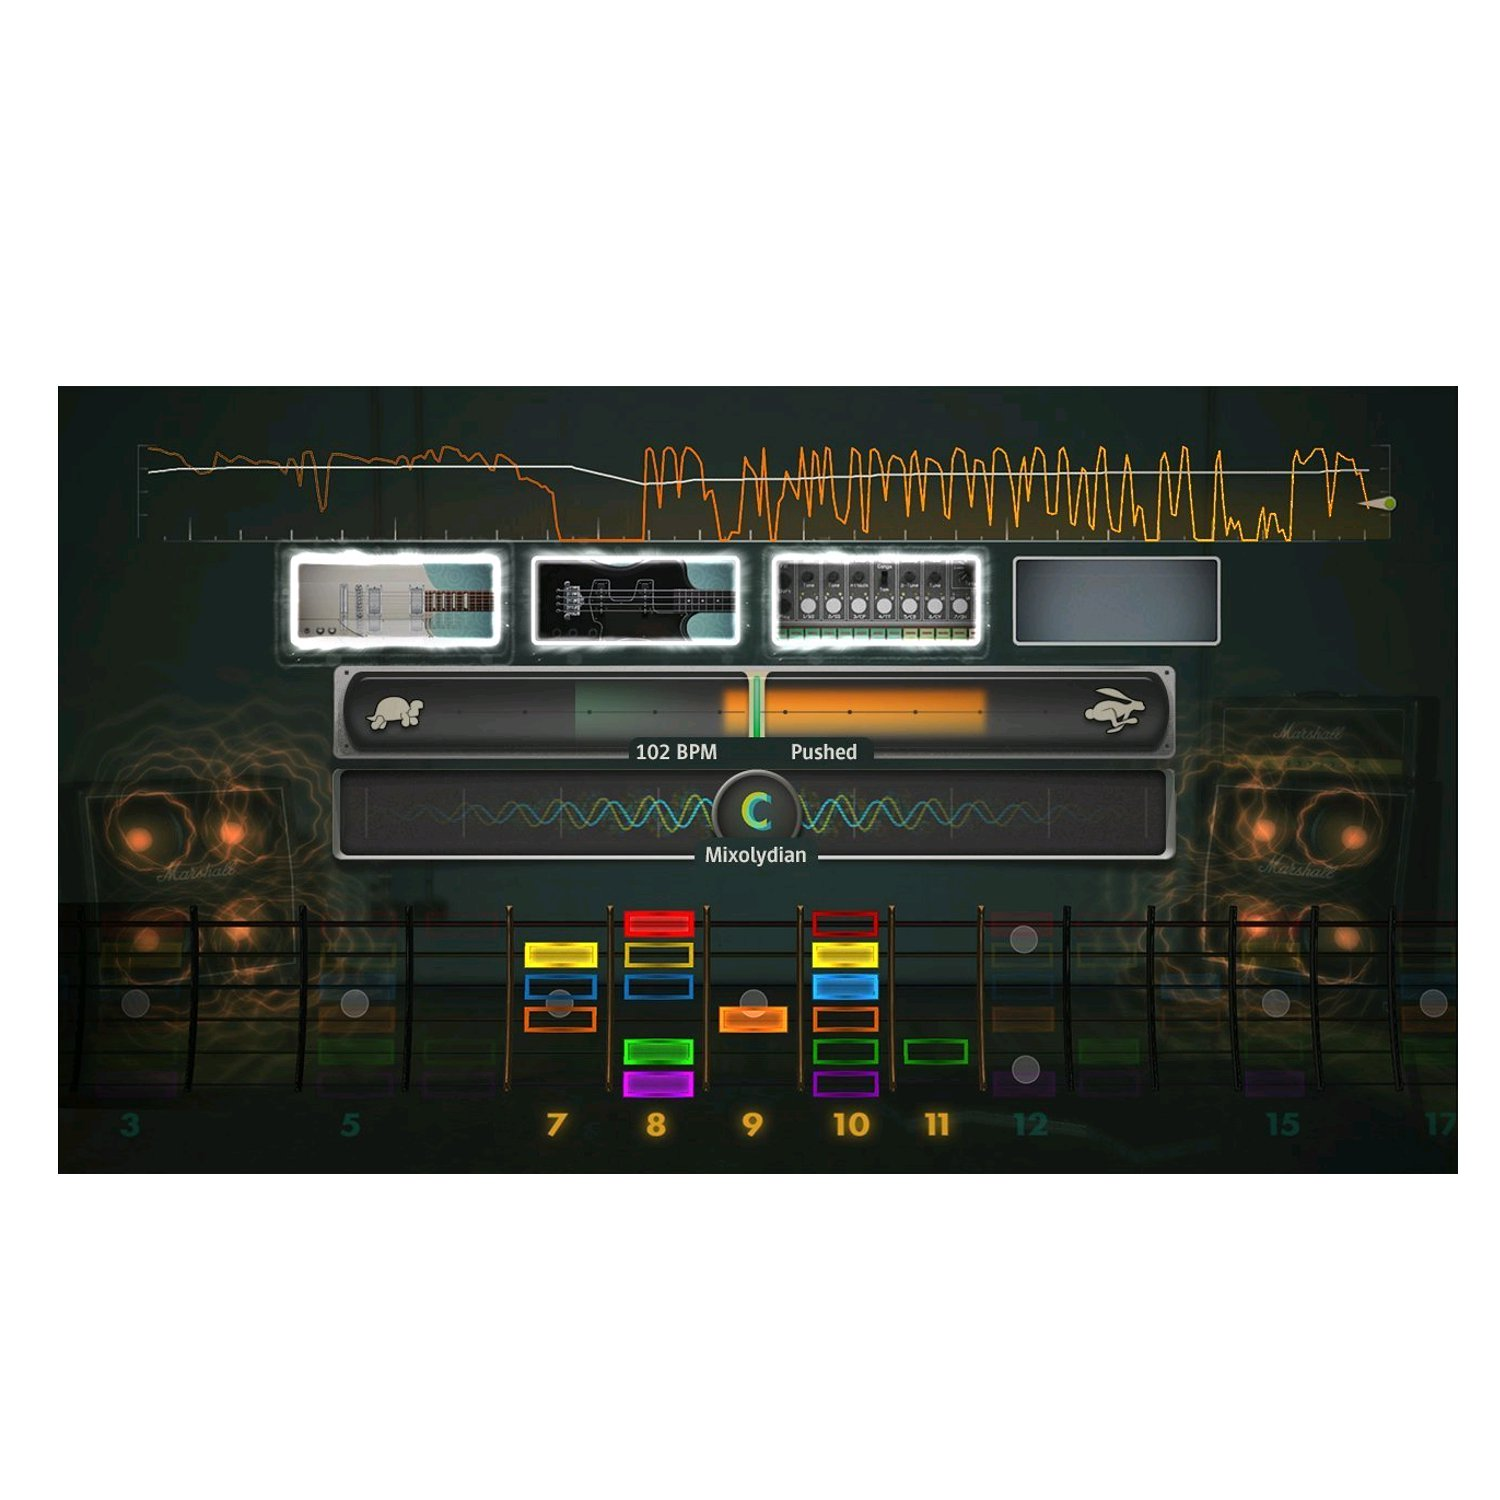 Rocksmith 2014 Download For Pc